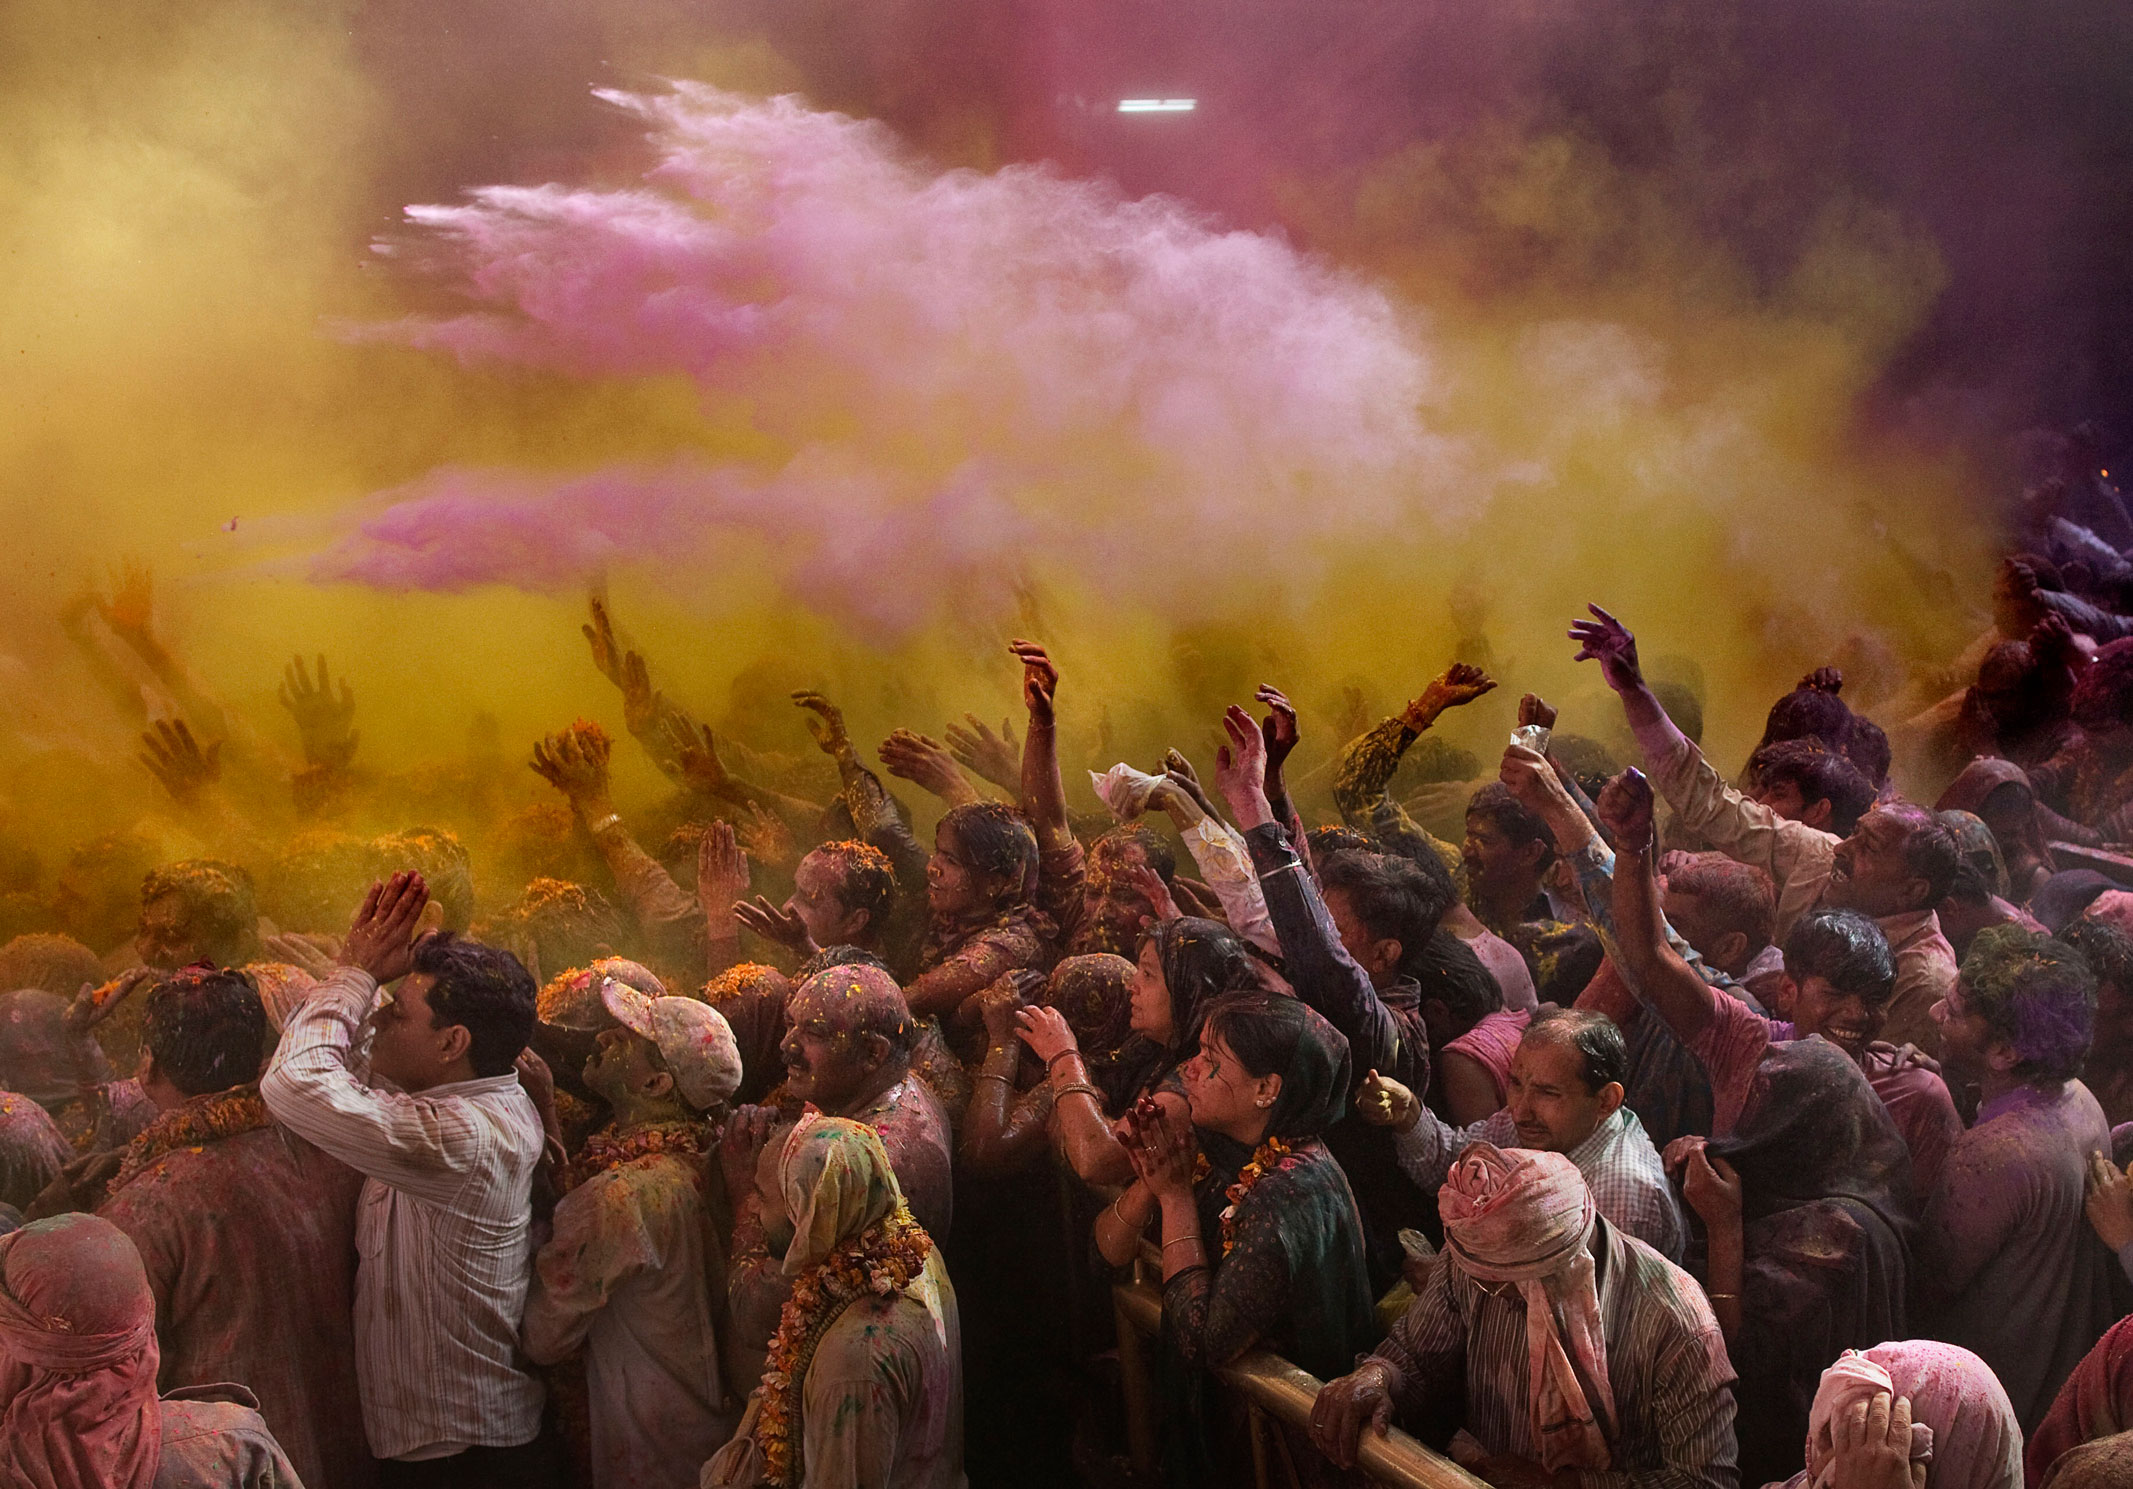 Hindu devotees pray and face a deity as colored powder is thrown on them while celebrating  Holi,  the festival of color, crowd at the Banke Bihari temple in Vrindavan, on March 7, 2012.